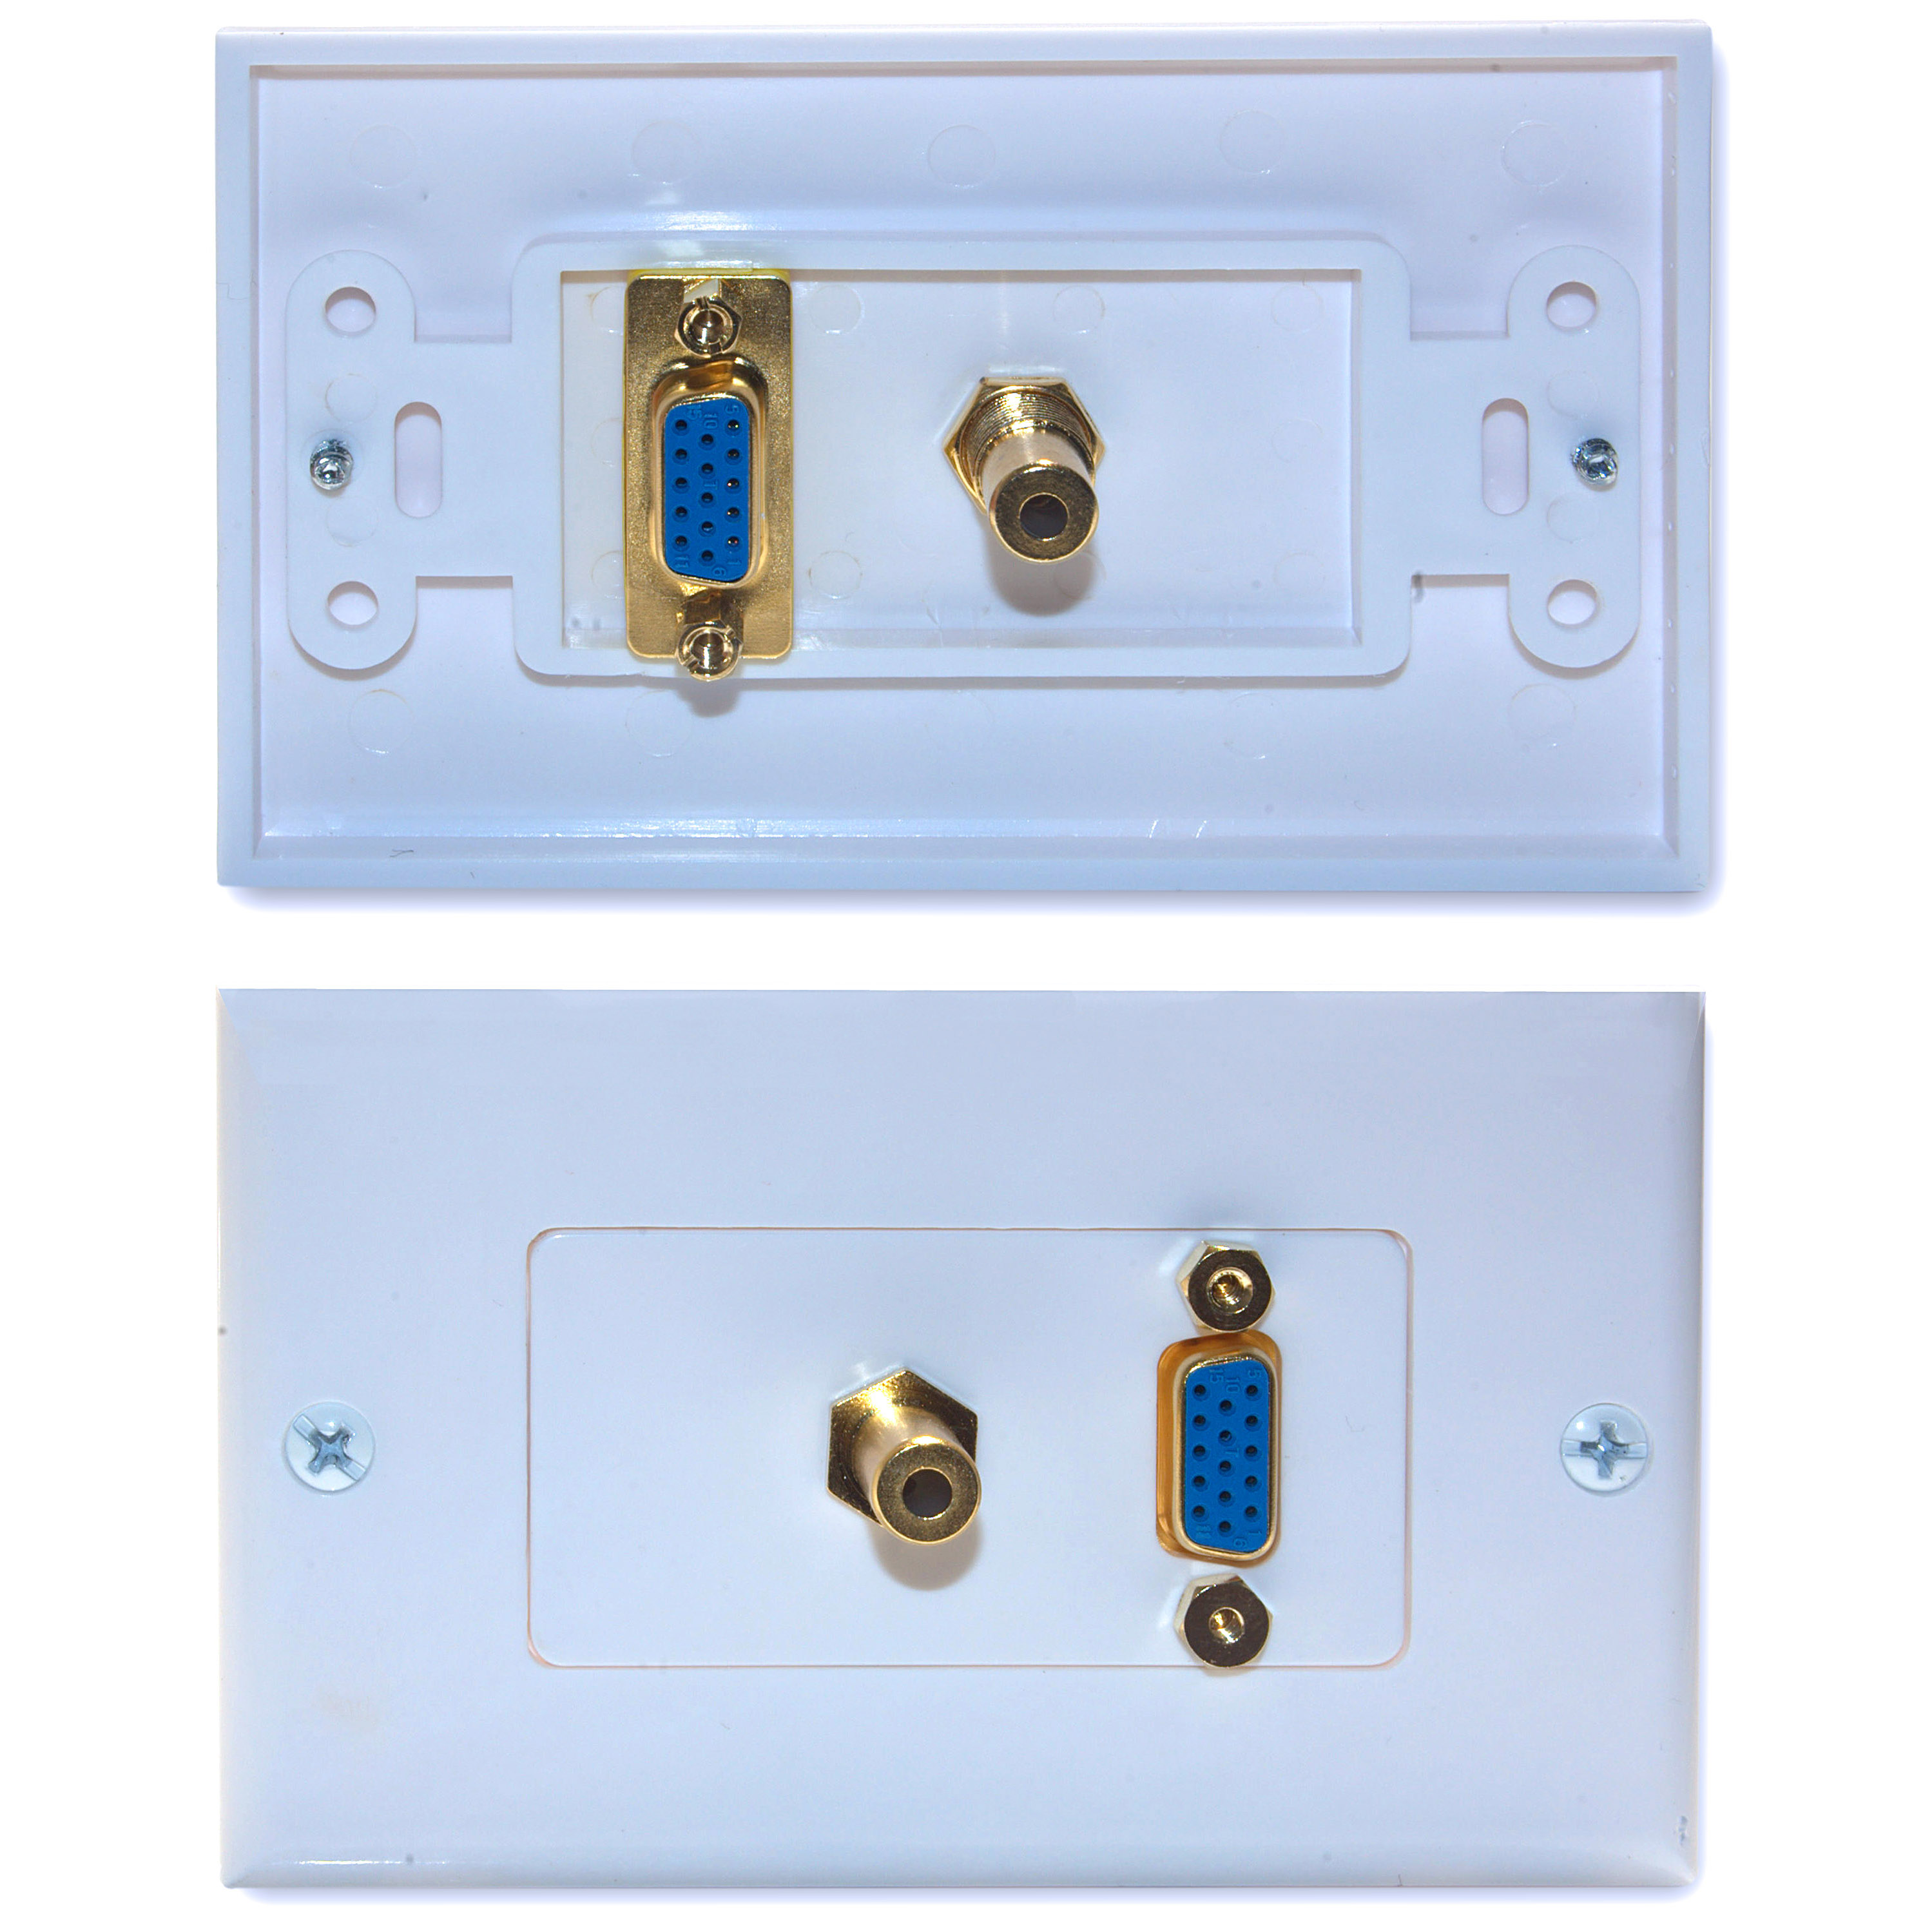 Wiring Vga Wall Plate Free Diagram For You 3 5mm Wire White Stereo Jack